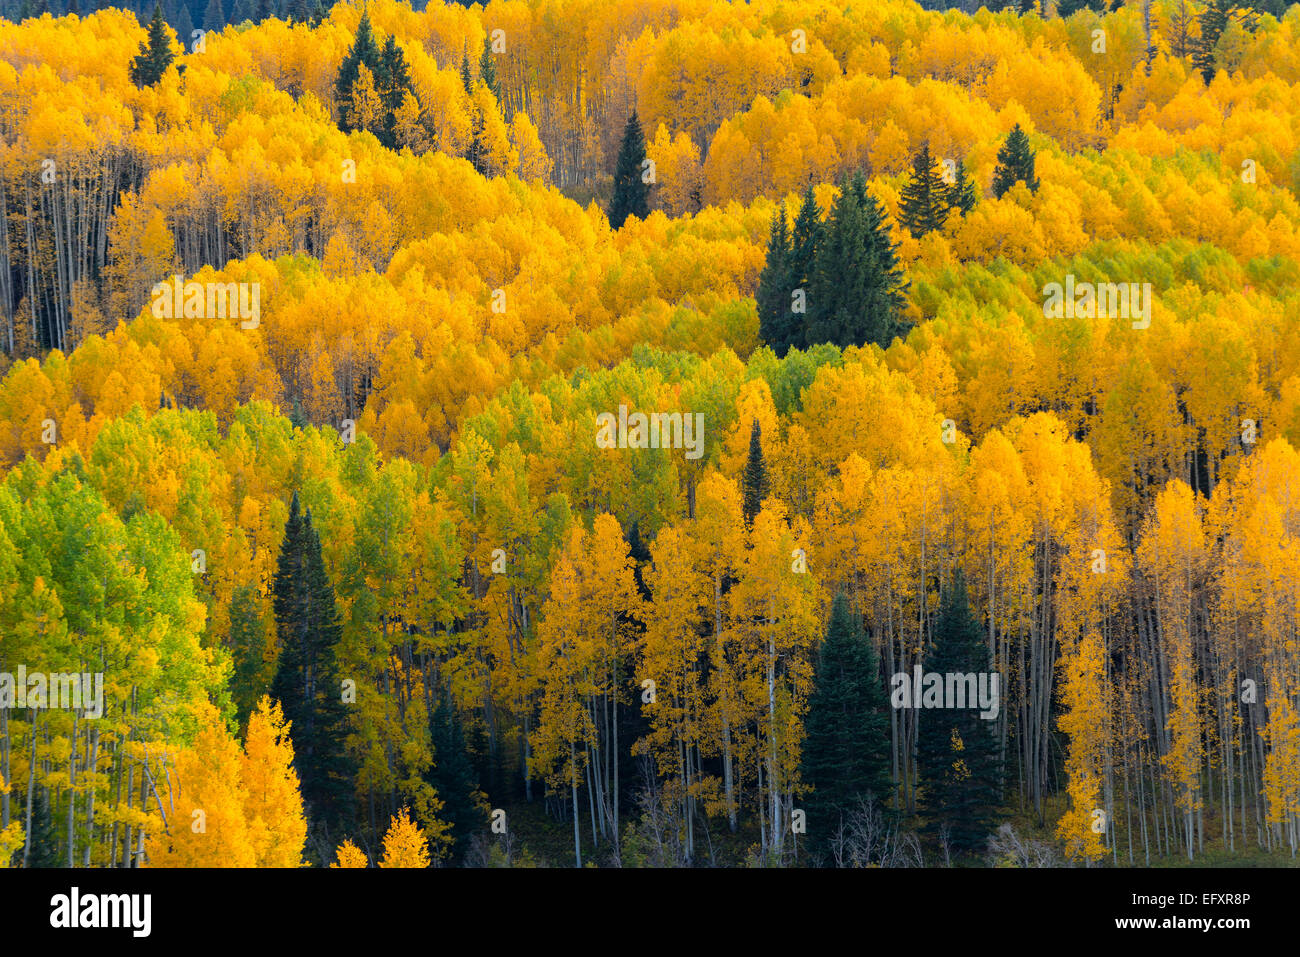 Gunnison National Forest, West Elk Mountains, CO: Aspen grove in fall - Stock Image